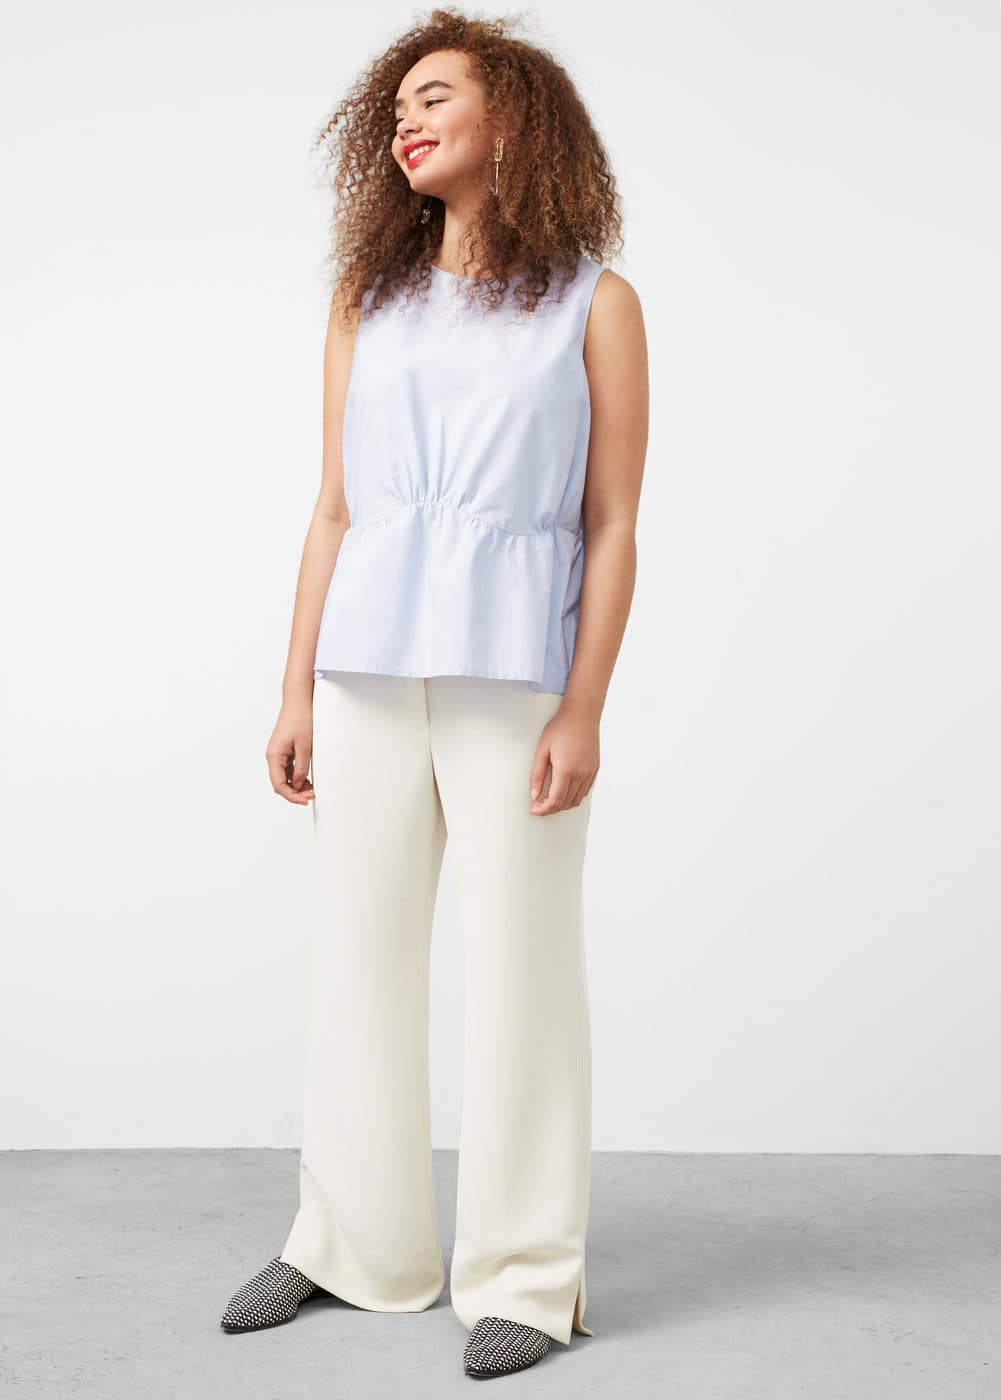 Ruched detail blouse | VIOLETA BY MANGO